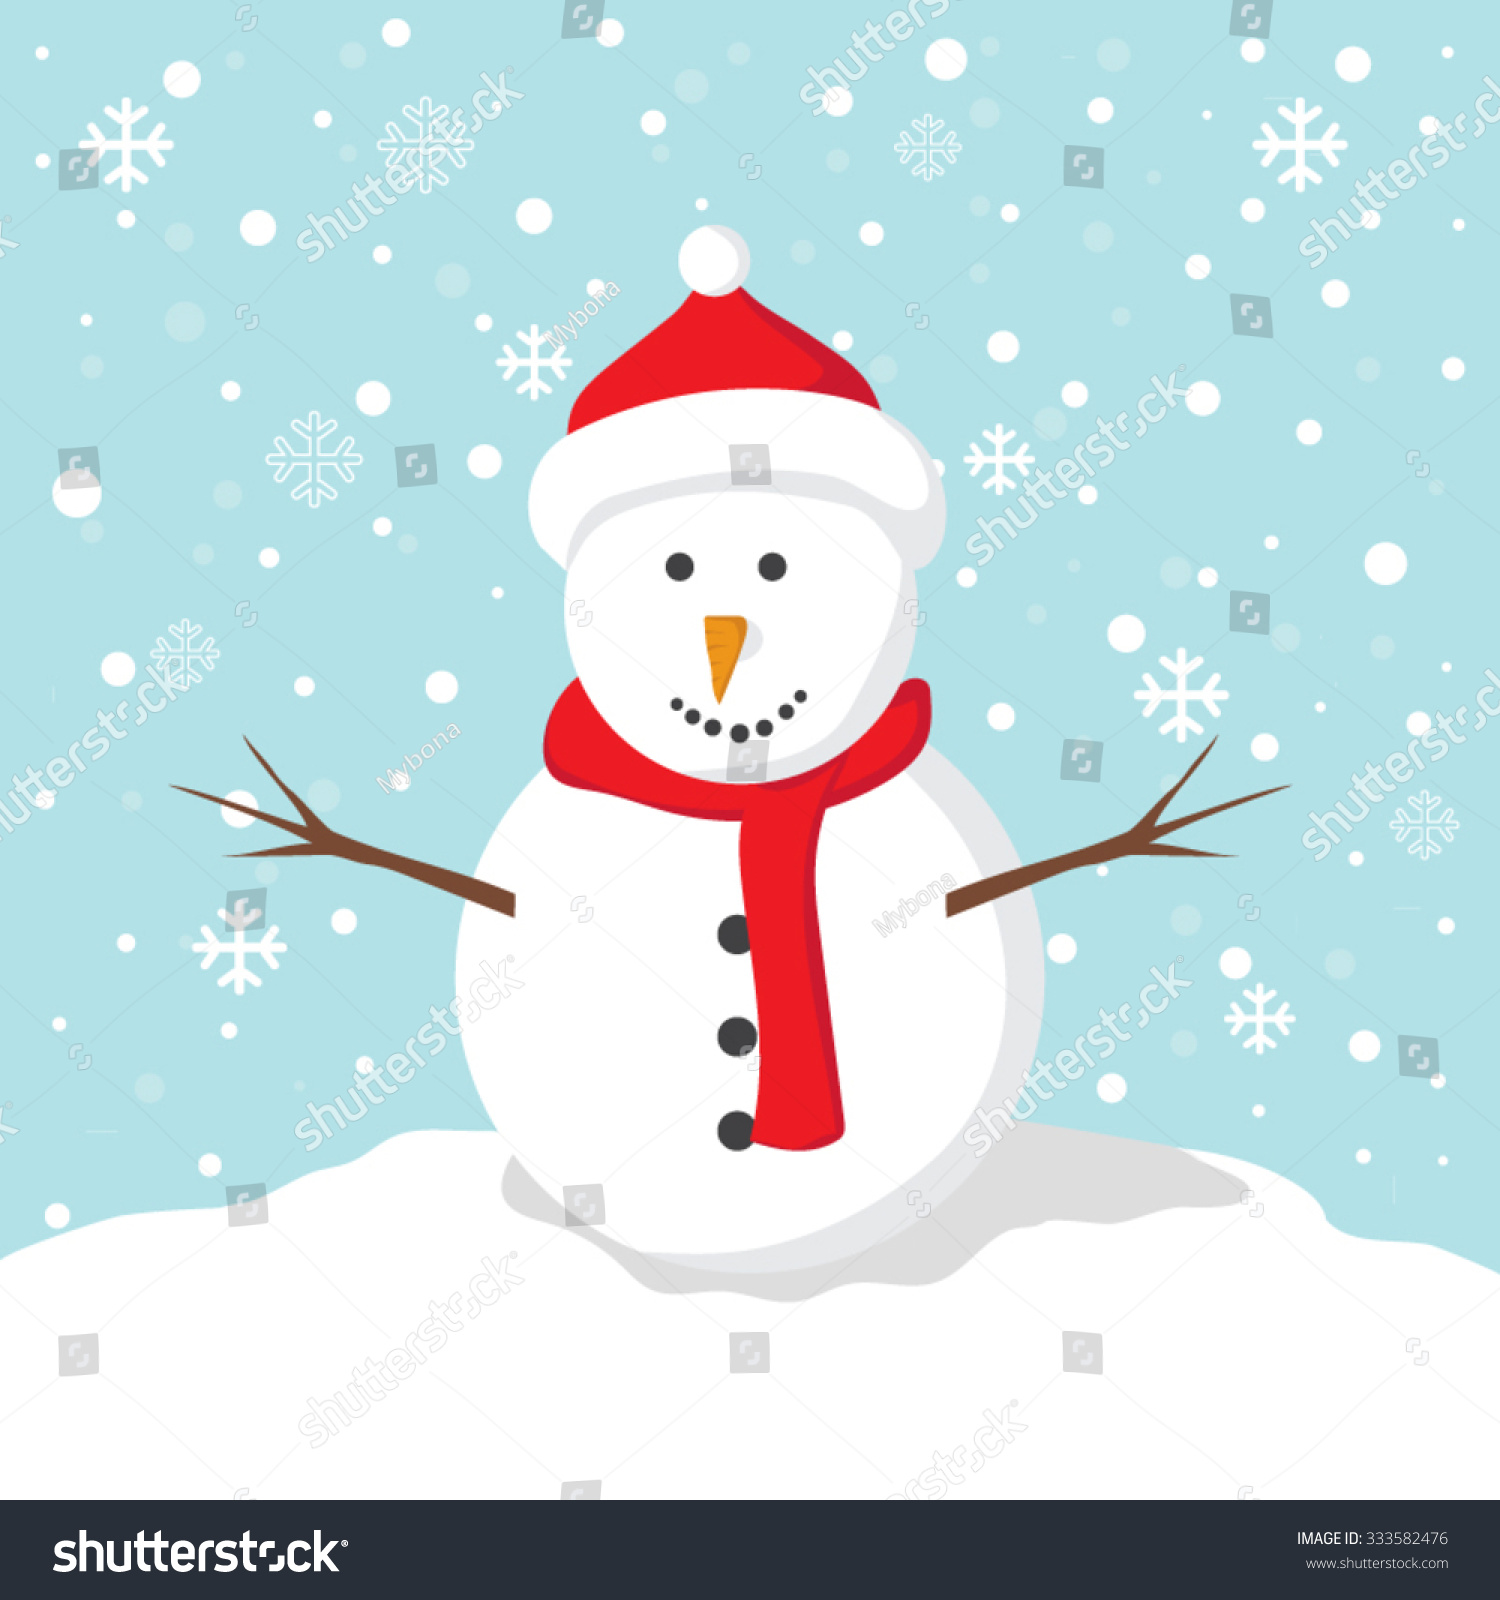 Cartoon Clip Art Snowman Red Hat Stock Vector 333582476 - Shutterstock